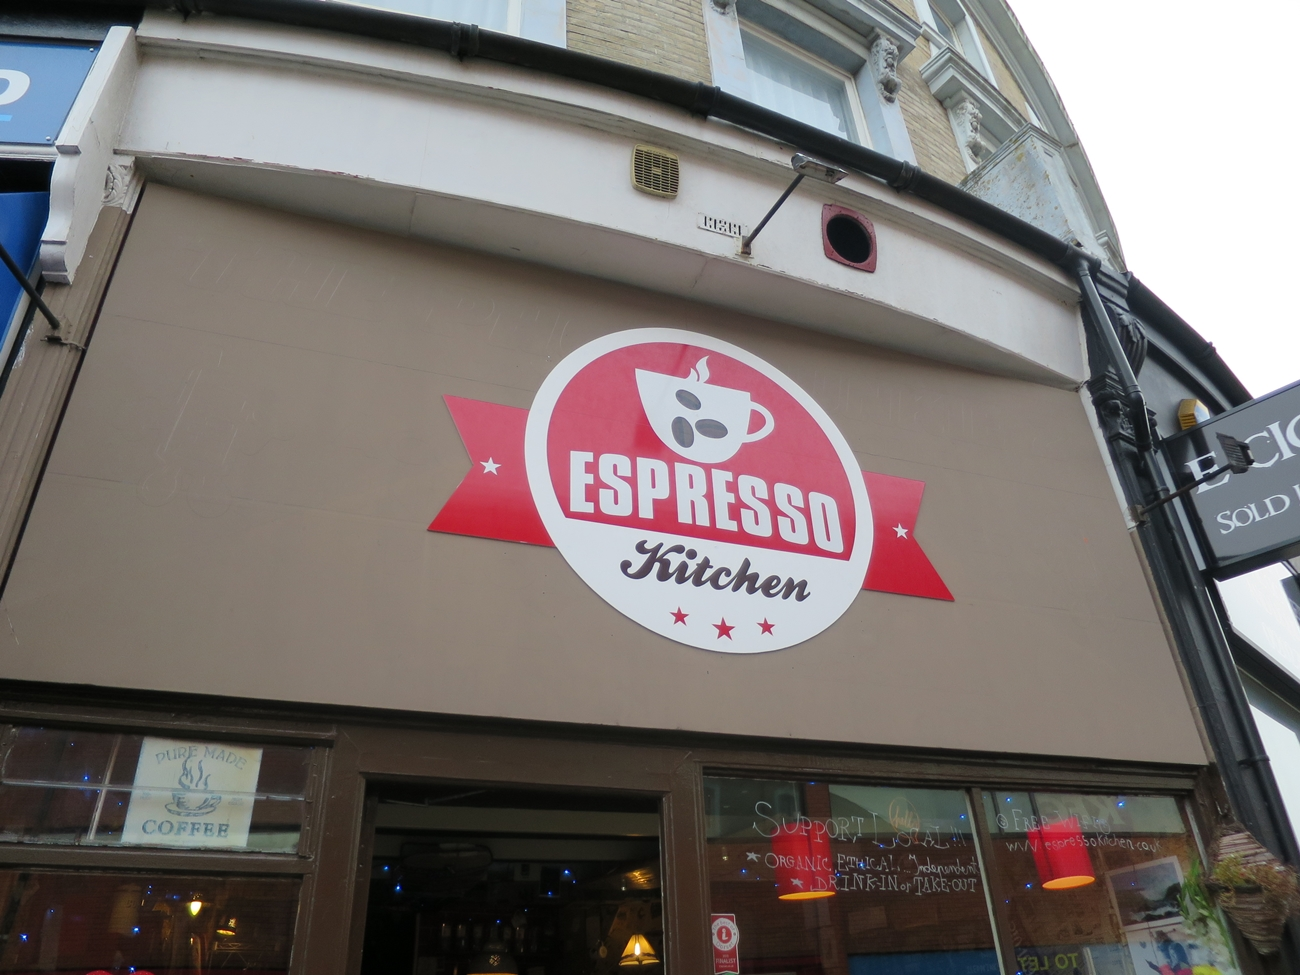 Espresso Kitchen in Bournemouth